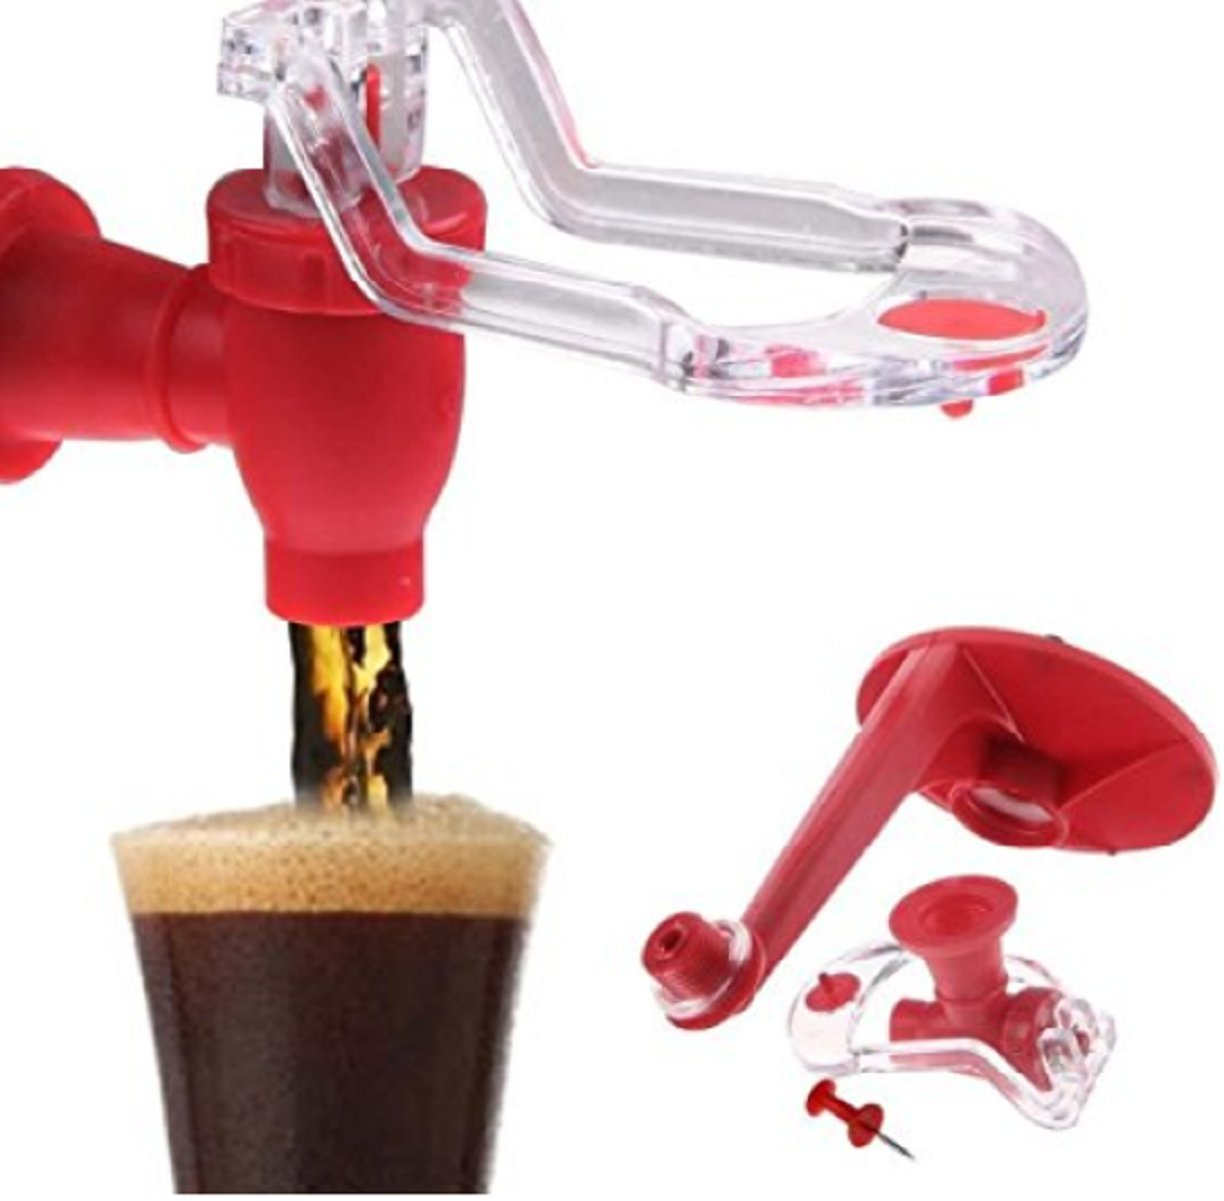 HP Home@ Fizz Saver Refrigerator Wondeful Drink Saver Dispenser Linkspe Home Bar Coke Fizzy Soda Soft Drinking Faucet Red Creative 1 pcs